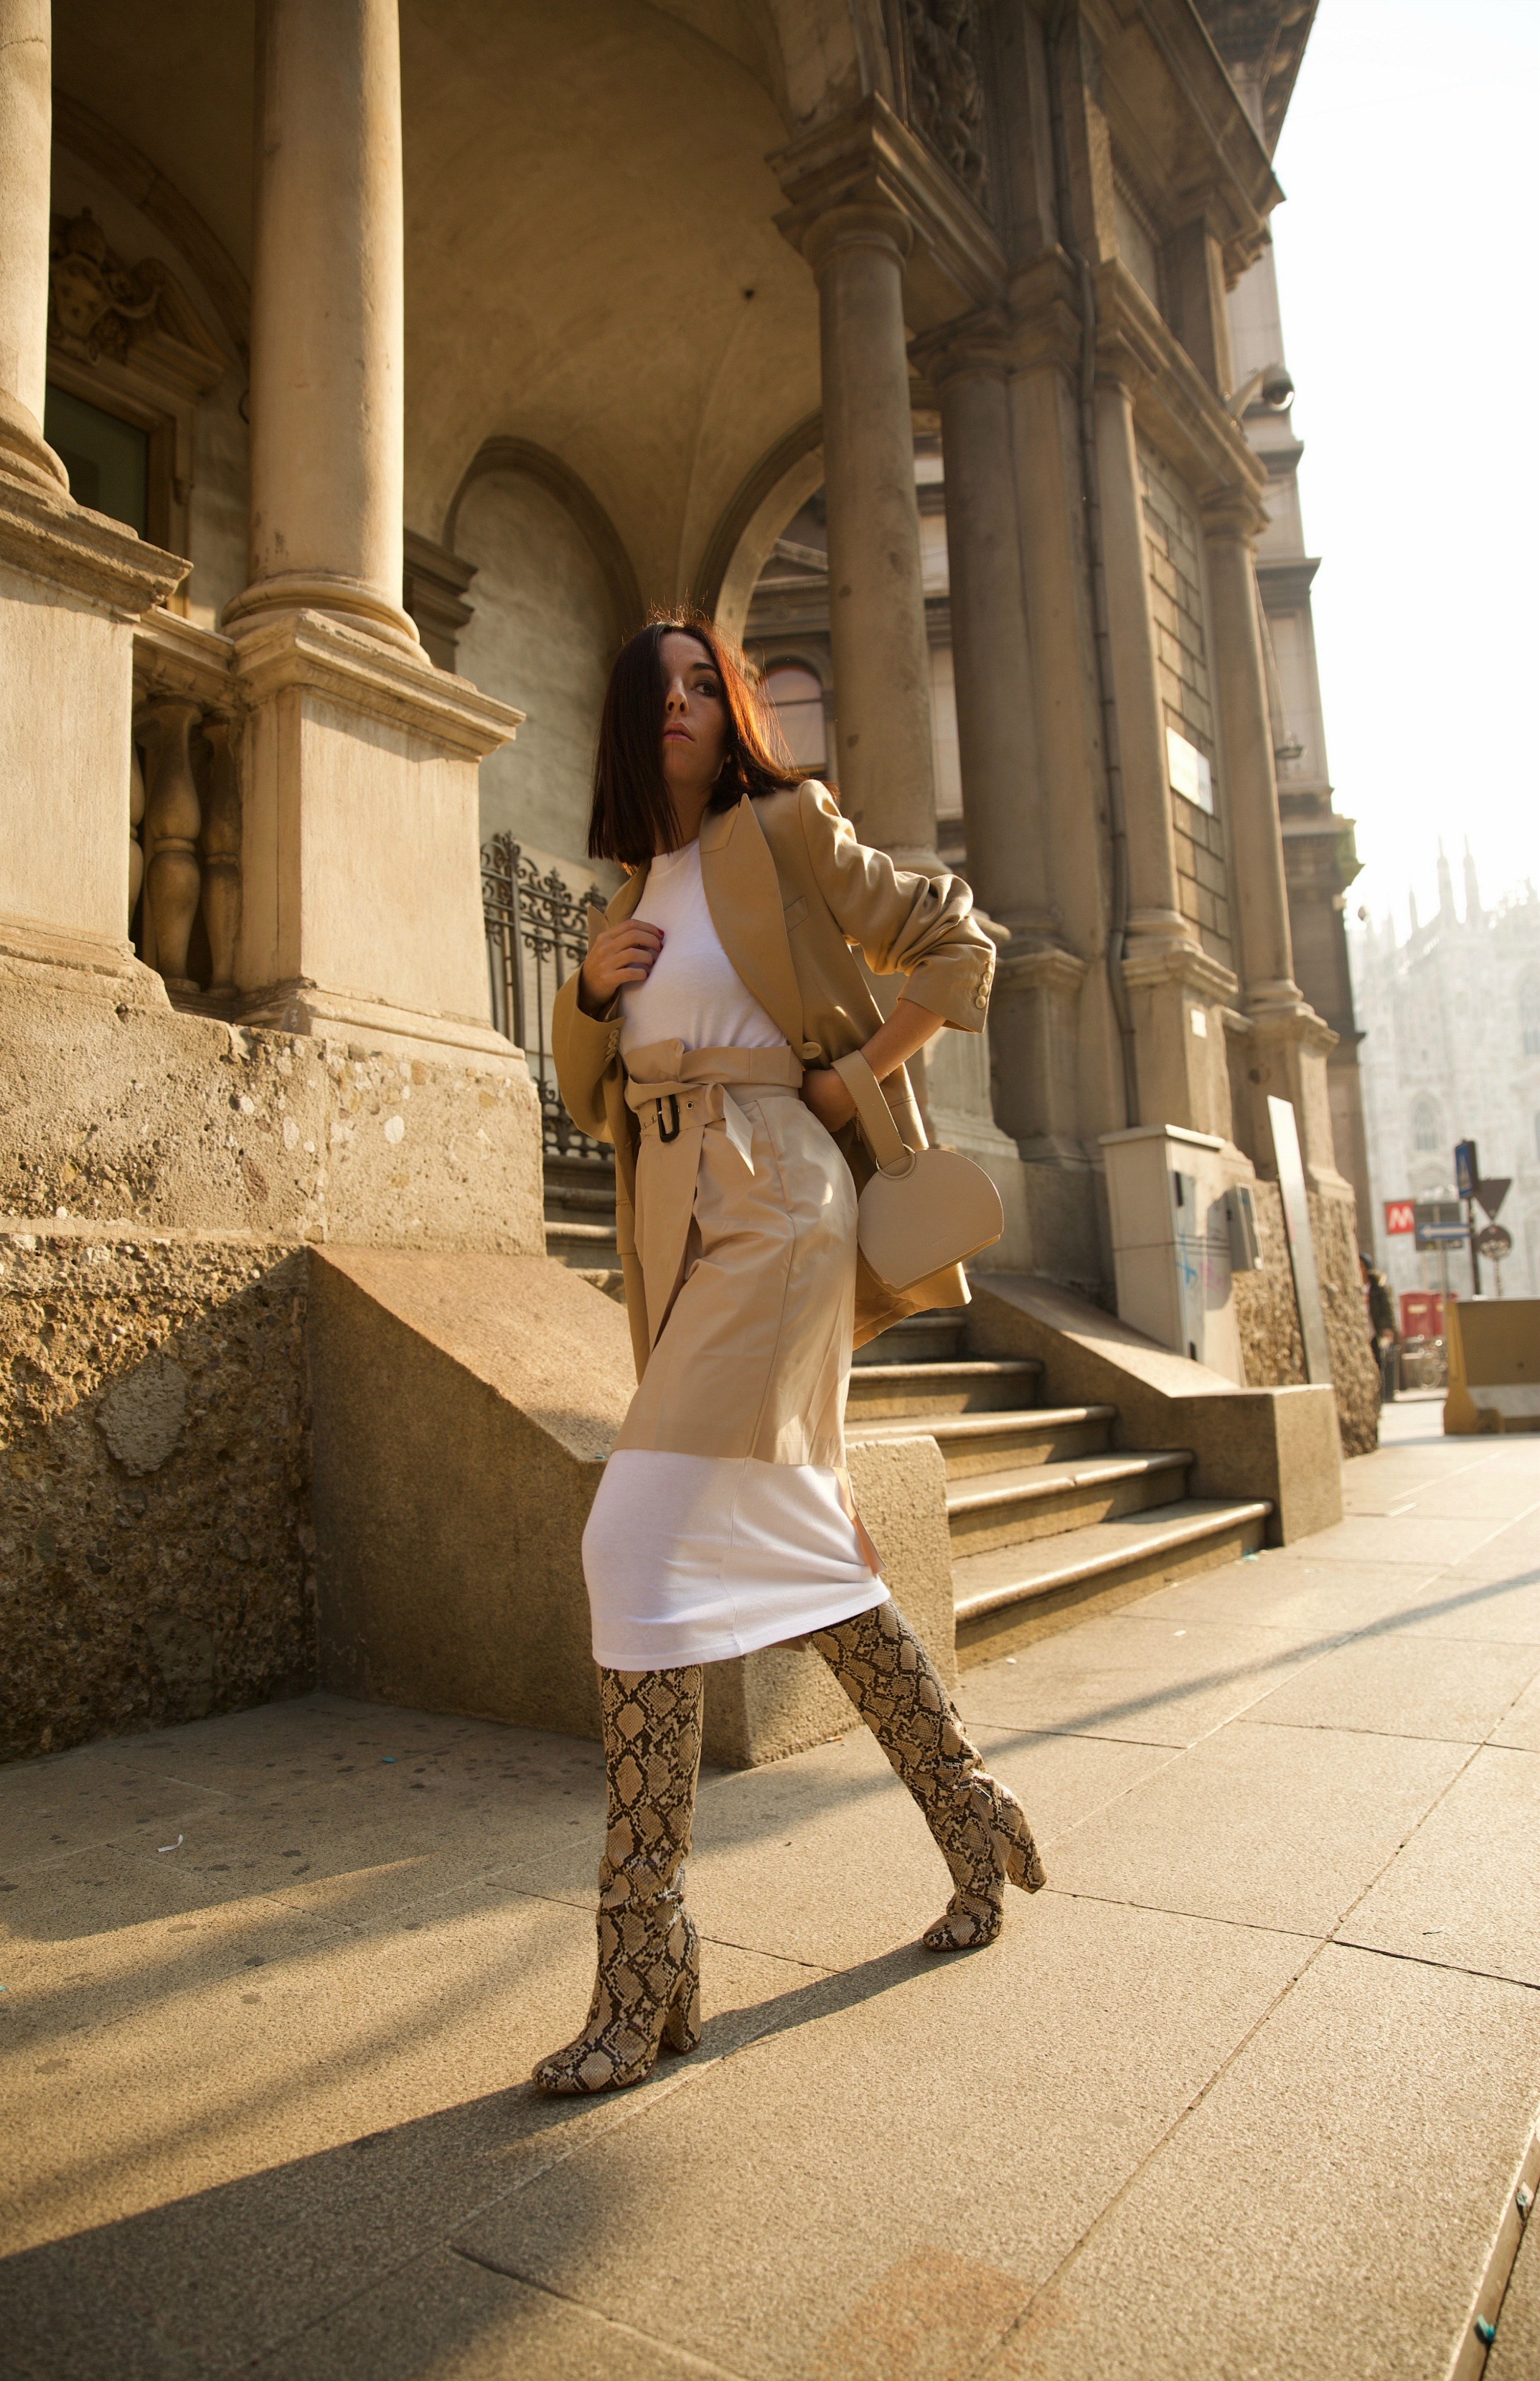 fashion editorial, elisa bellino, fashion blogger italiane 2019, fashion blog italia 2019, beige aesthetics, minimal style outfit, luxury blogger milano 2019